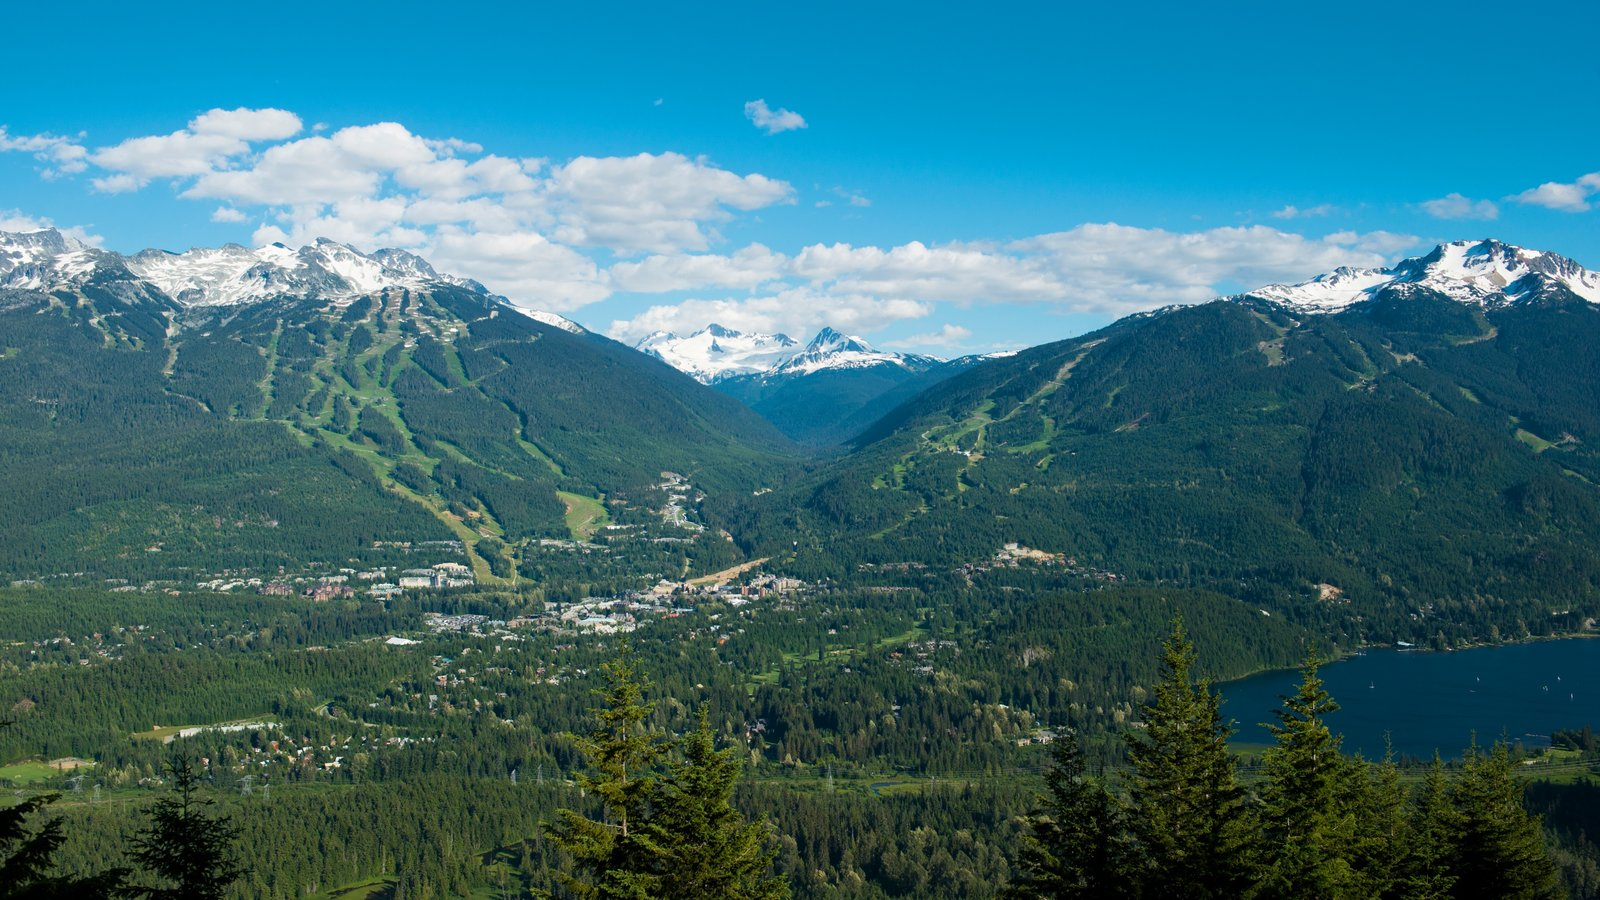 Whistler Blackcomb Ski Resort featuring mountains, tranquil scenes and a small town or village